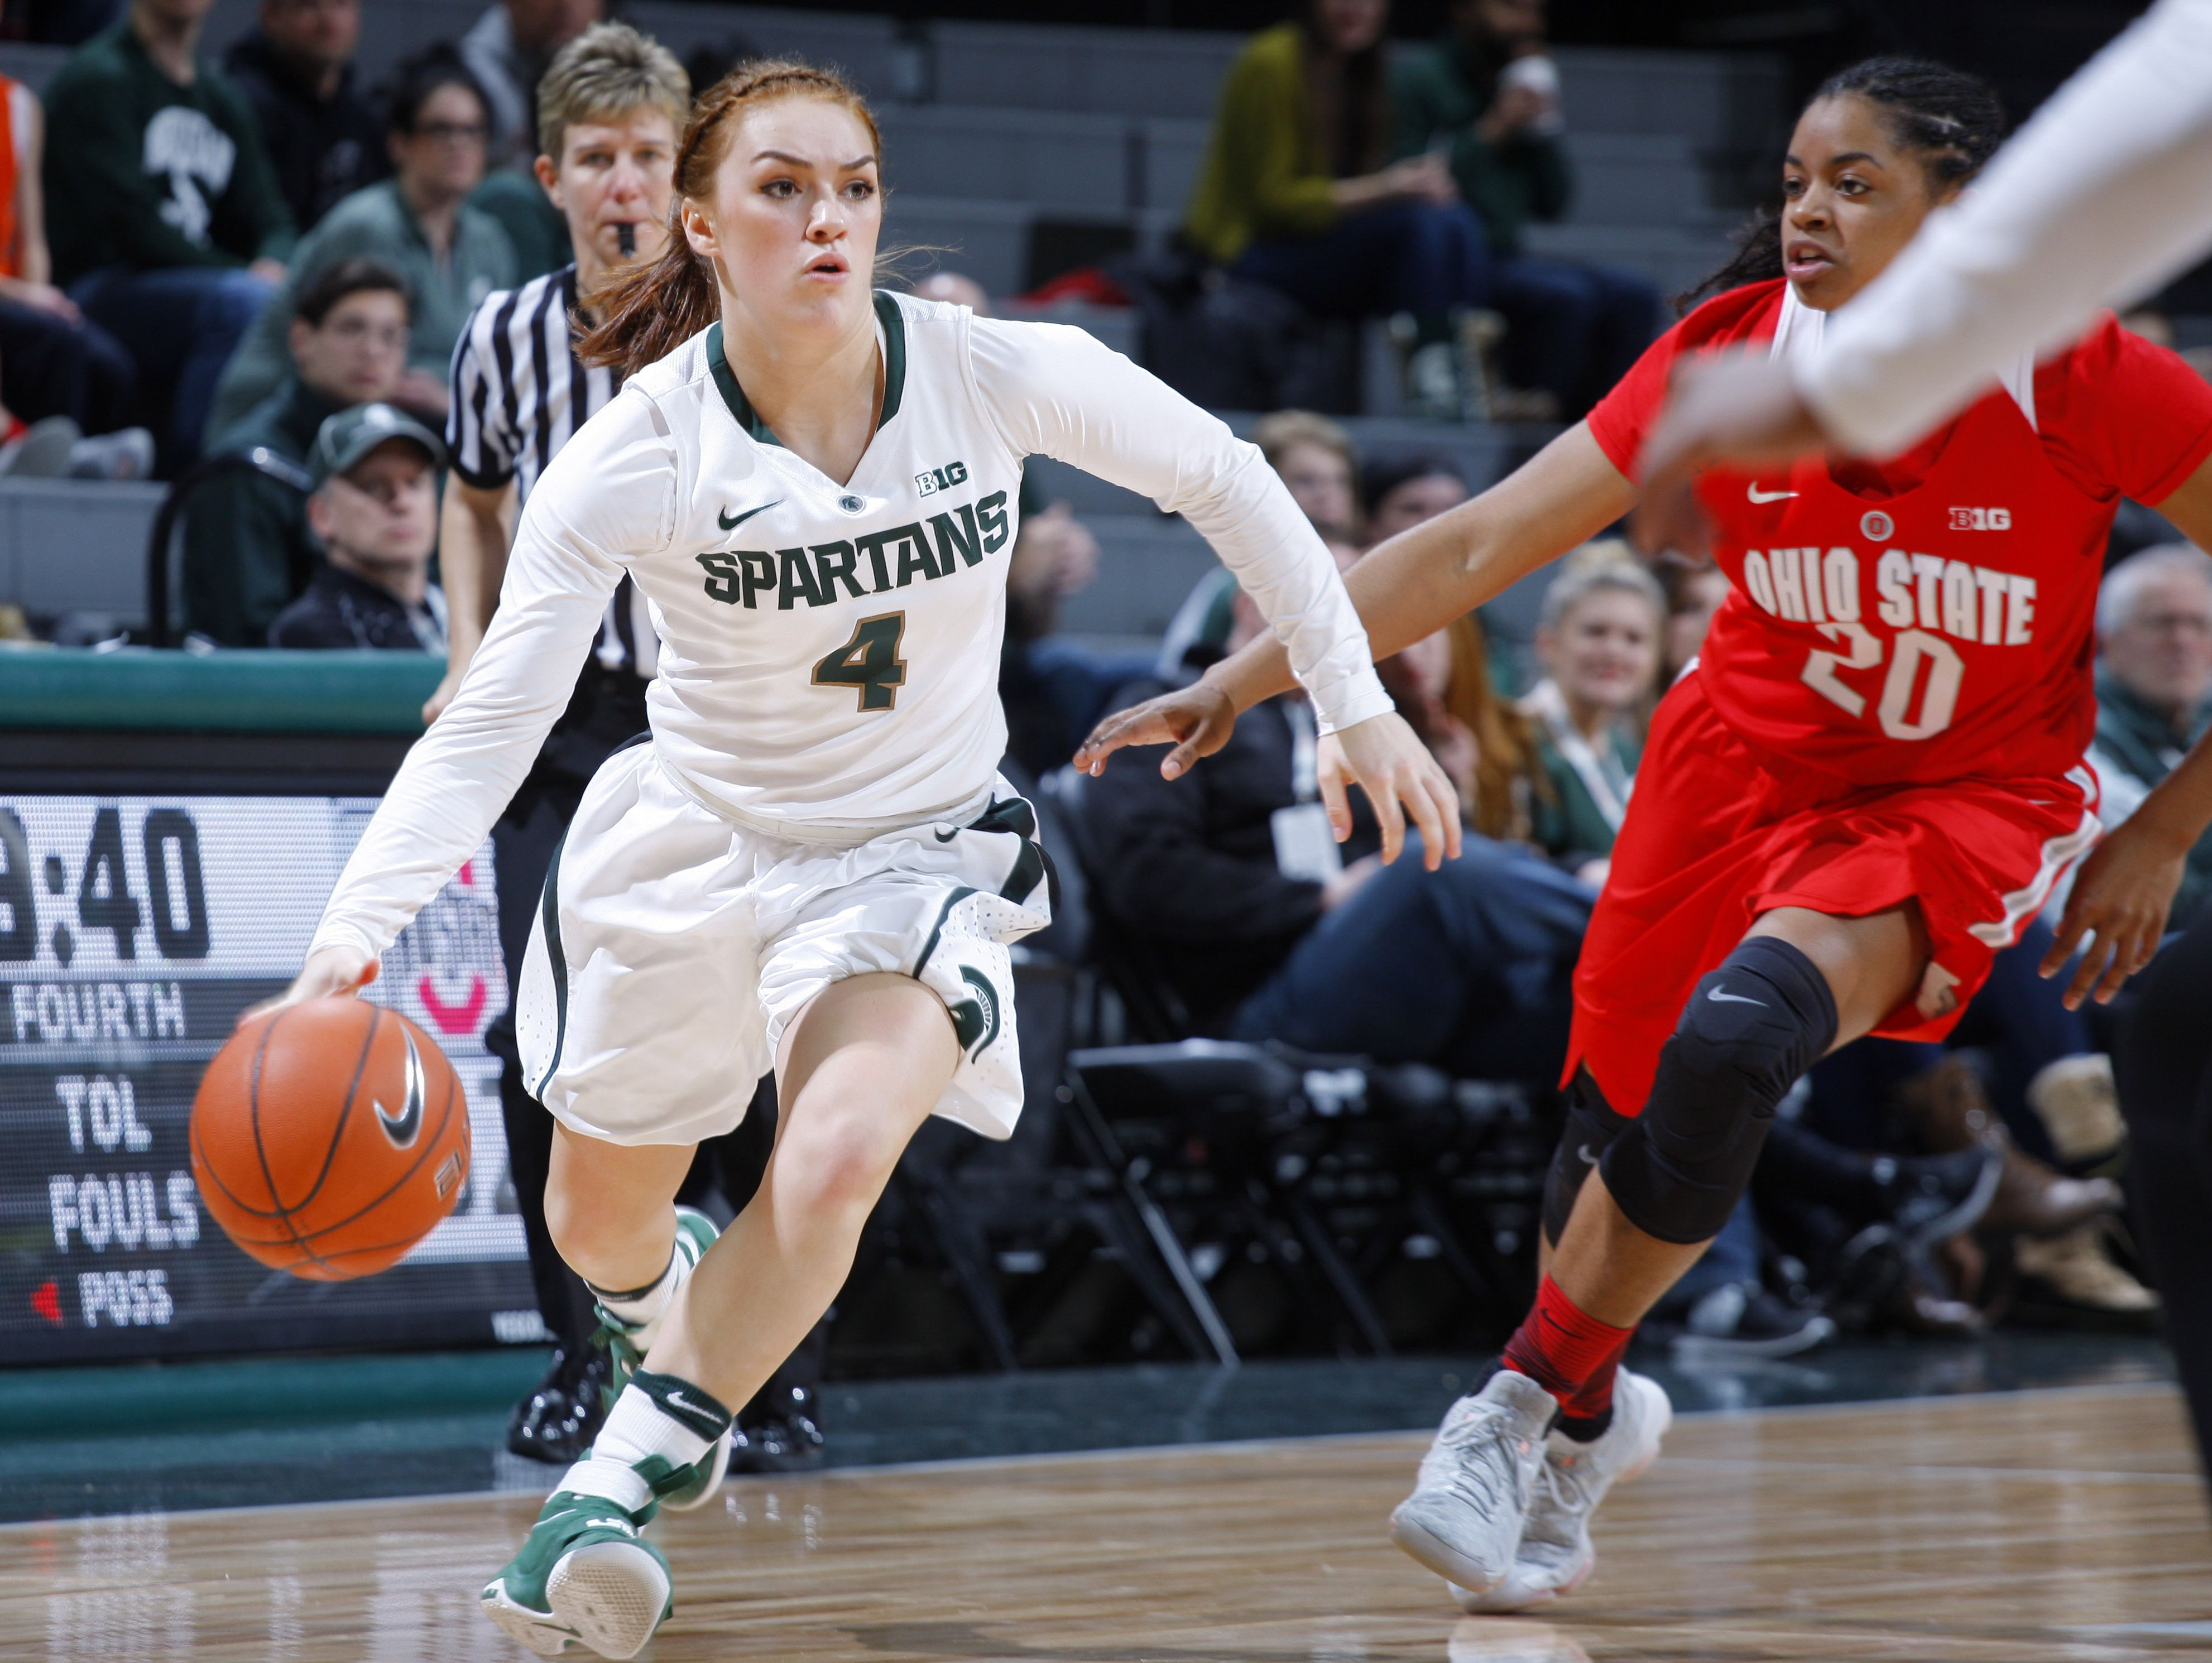 East Lansing grad Taryn McCutcheon, left, has averaged 15.0 points over her last two games for the Michigan State women's basketball team.